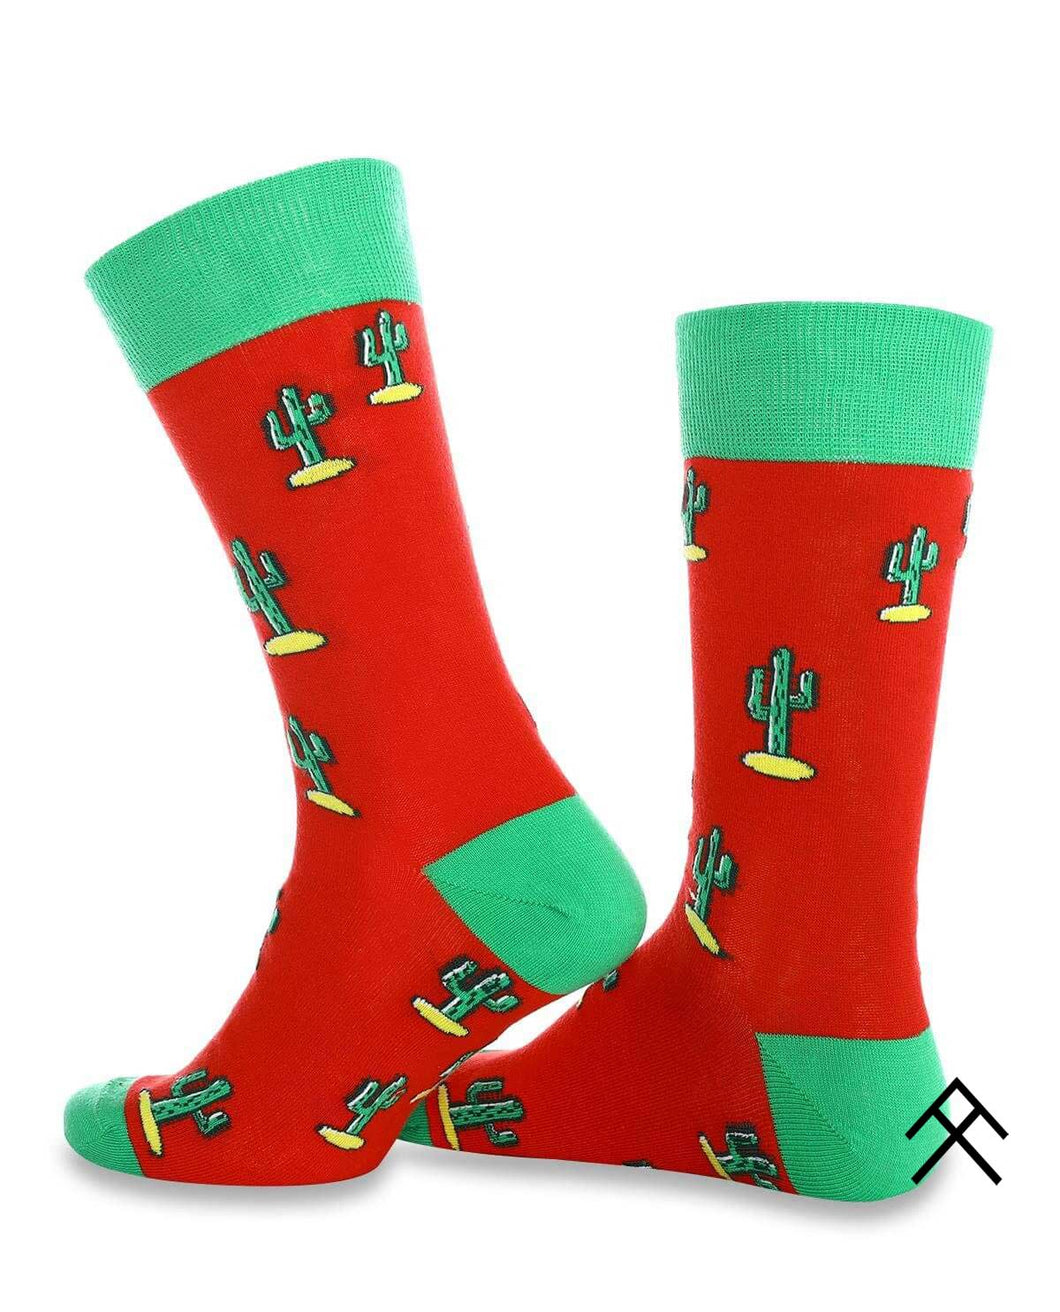 Cactus Print Red Socks